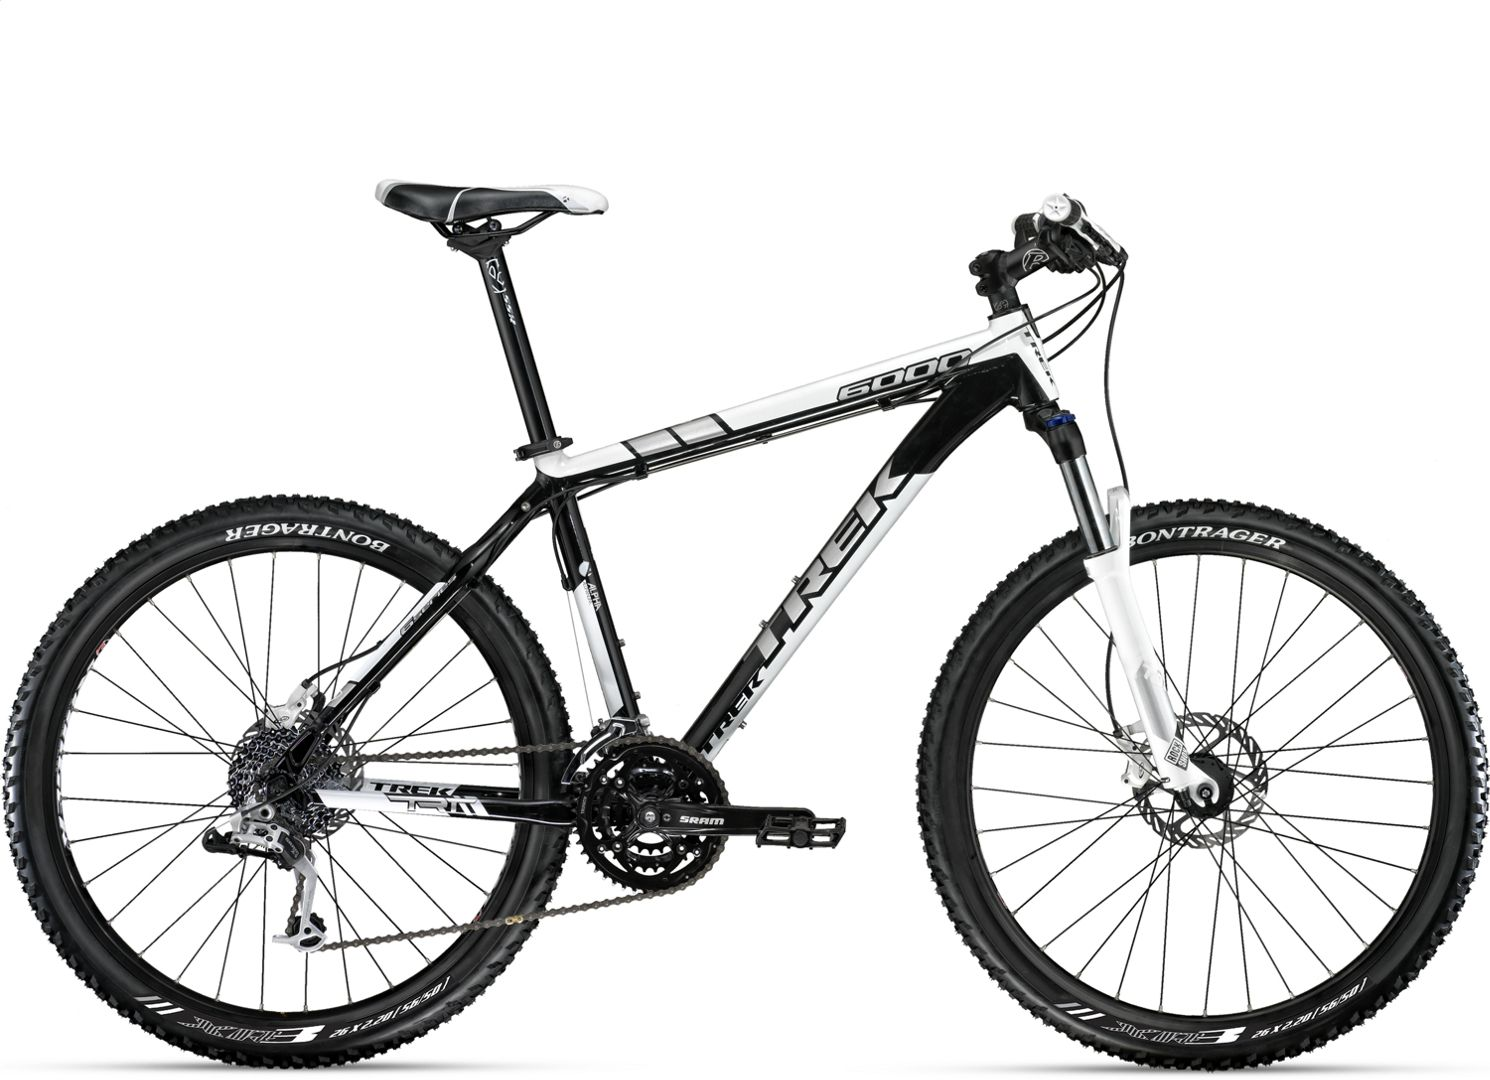 Trek 6000 Mtb Not Quite A 9 Series But Considerably Easier On The